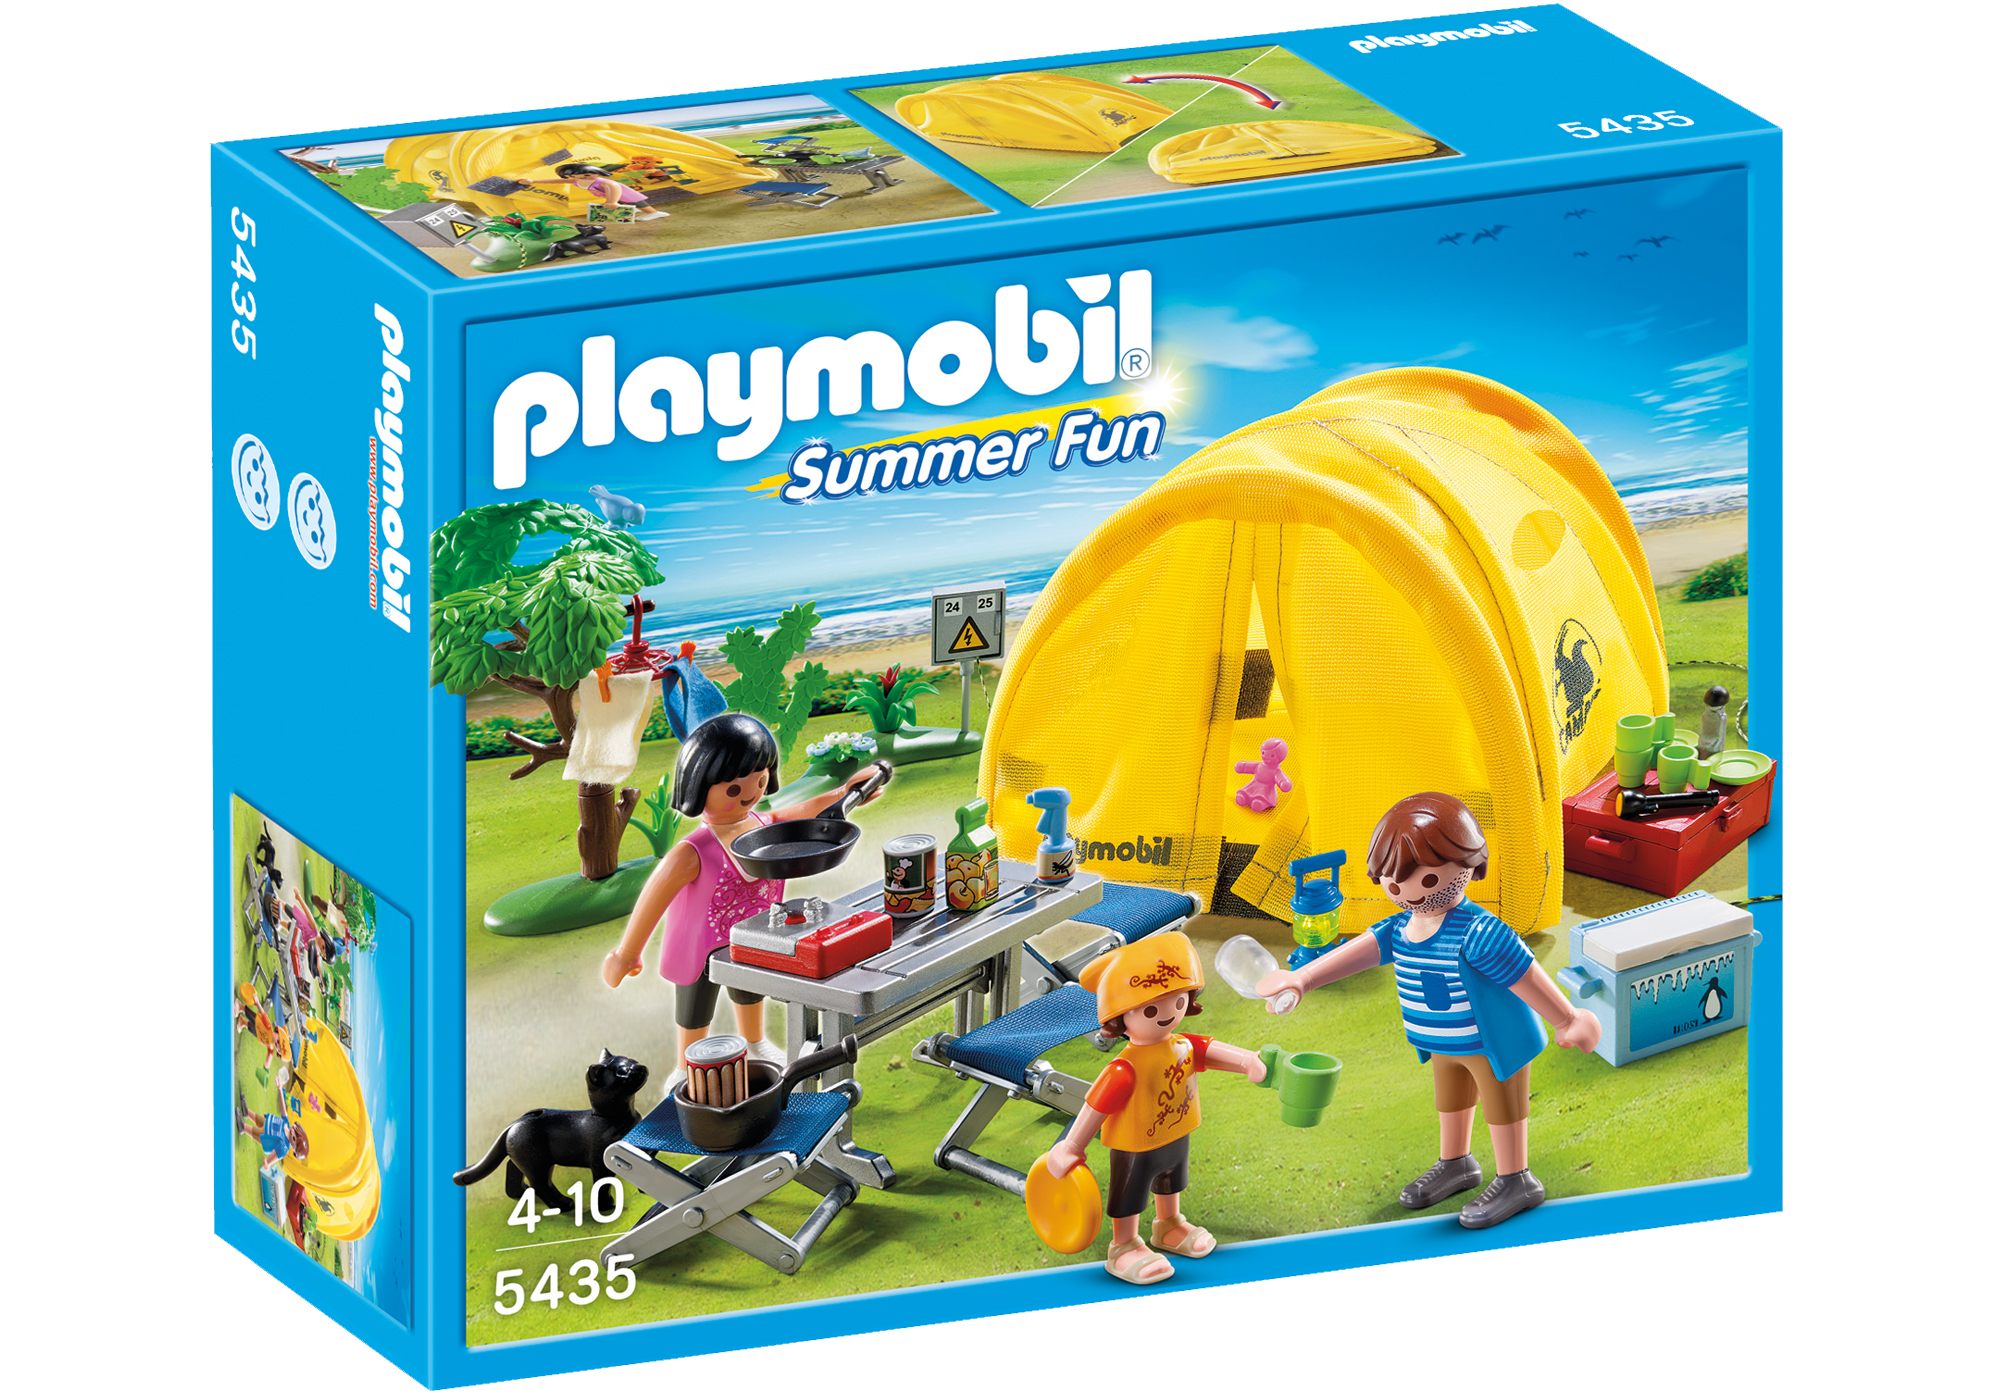 http://media.playmobil.com/i/playmobil/5435_product_box_front